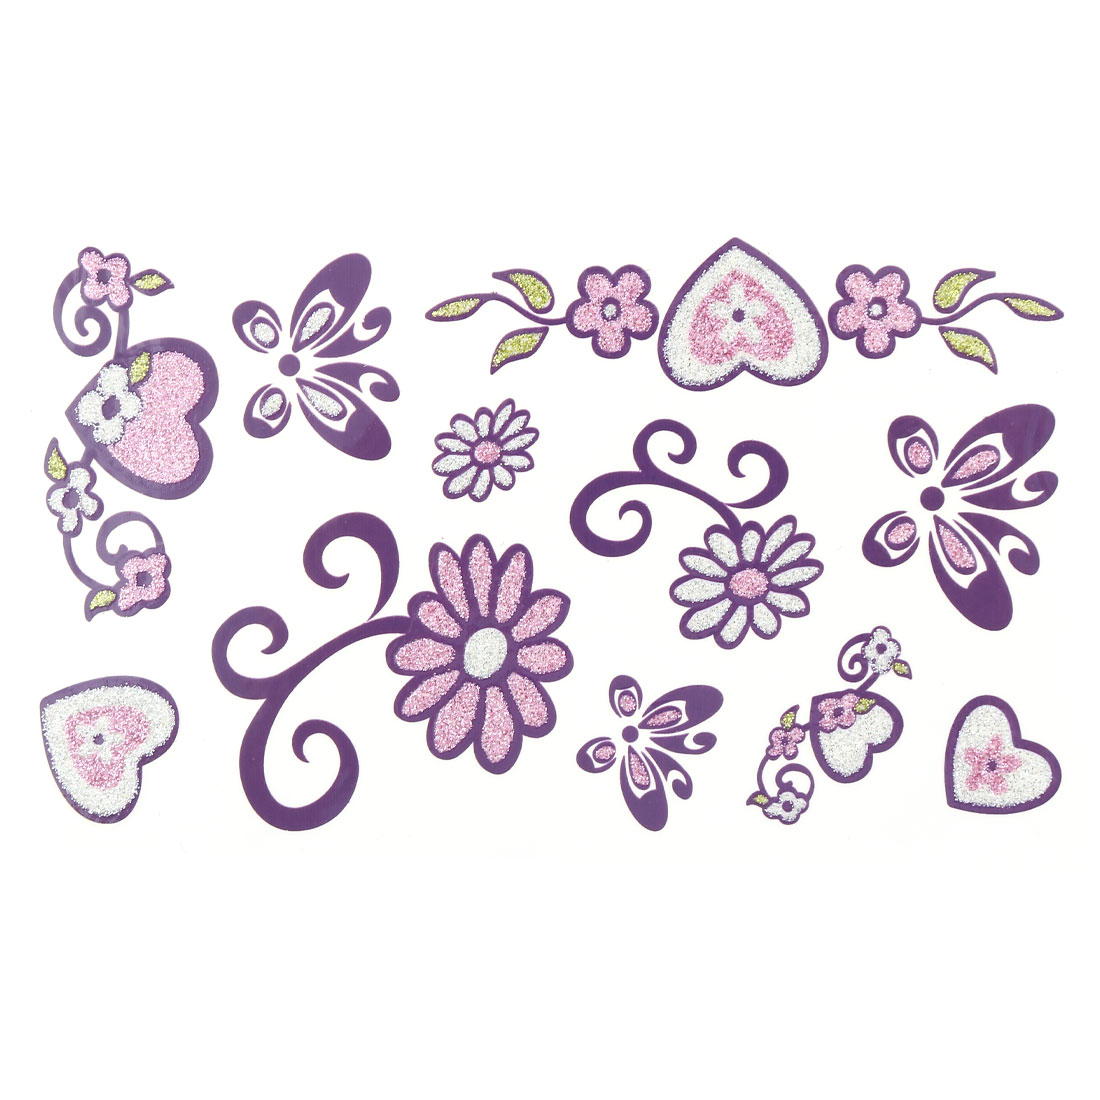 Women Flower Butterfly Heart Pattern Body Art Paper Sticker Temporary Tattoo Sheet